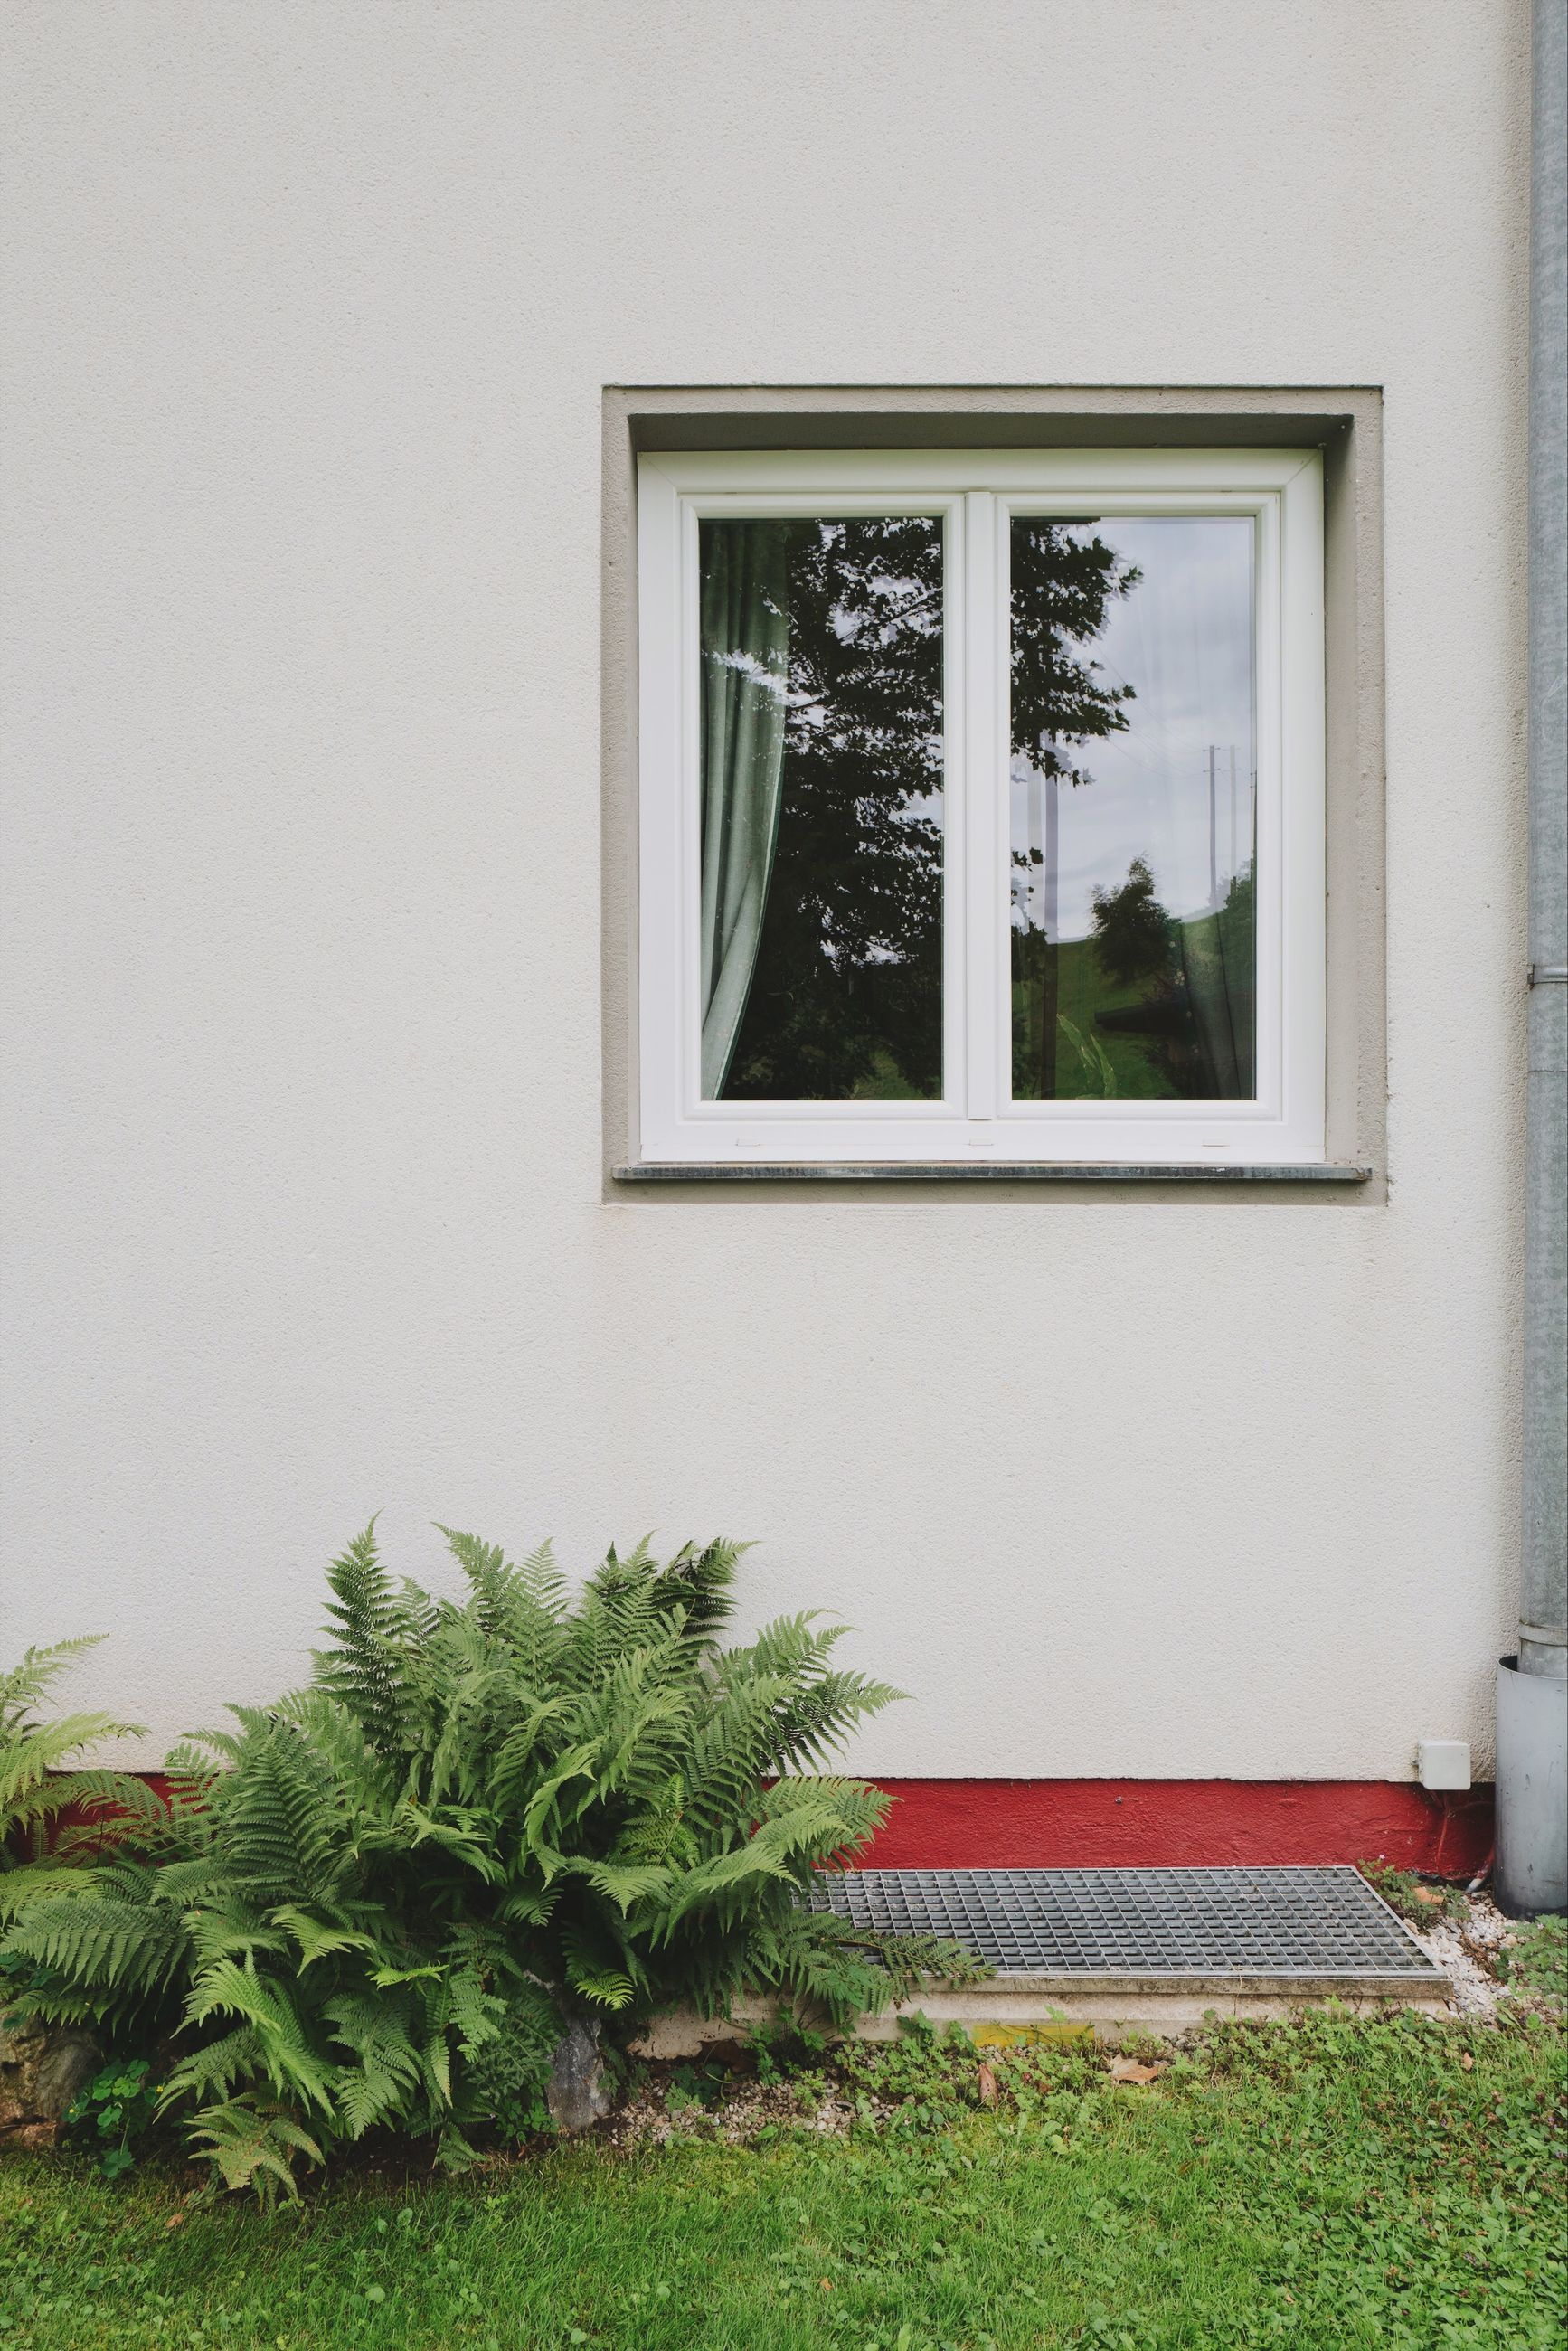 plant, window, architecture, built structure, grass, nature, day, building exterior, tree, growth, no people, house, green color, building, outdoors, lawn, field, wall - building feature, front or back yard, glass - material